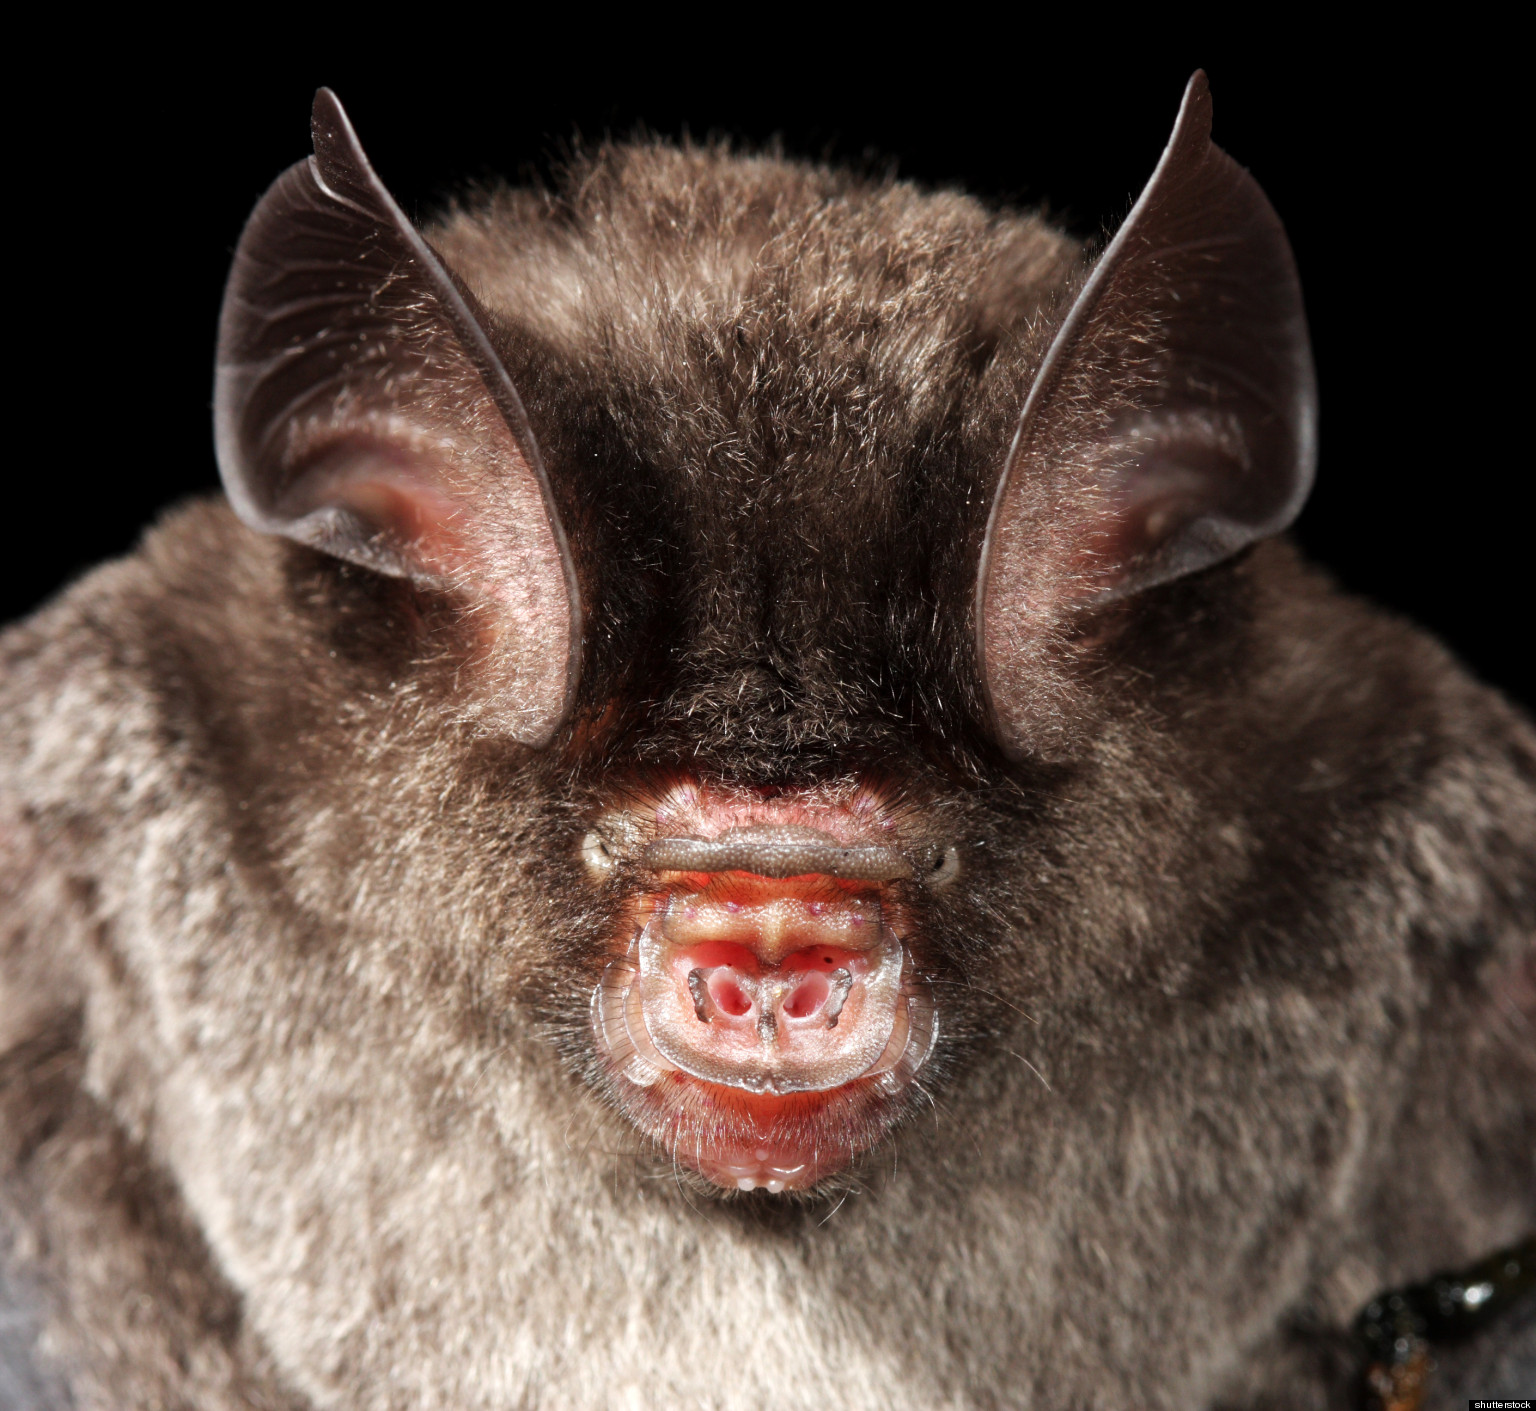 Bat Bus 12 >> Bat Immunity Research May Shed Light On Cancer, Infections ...